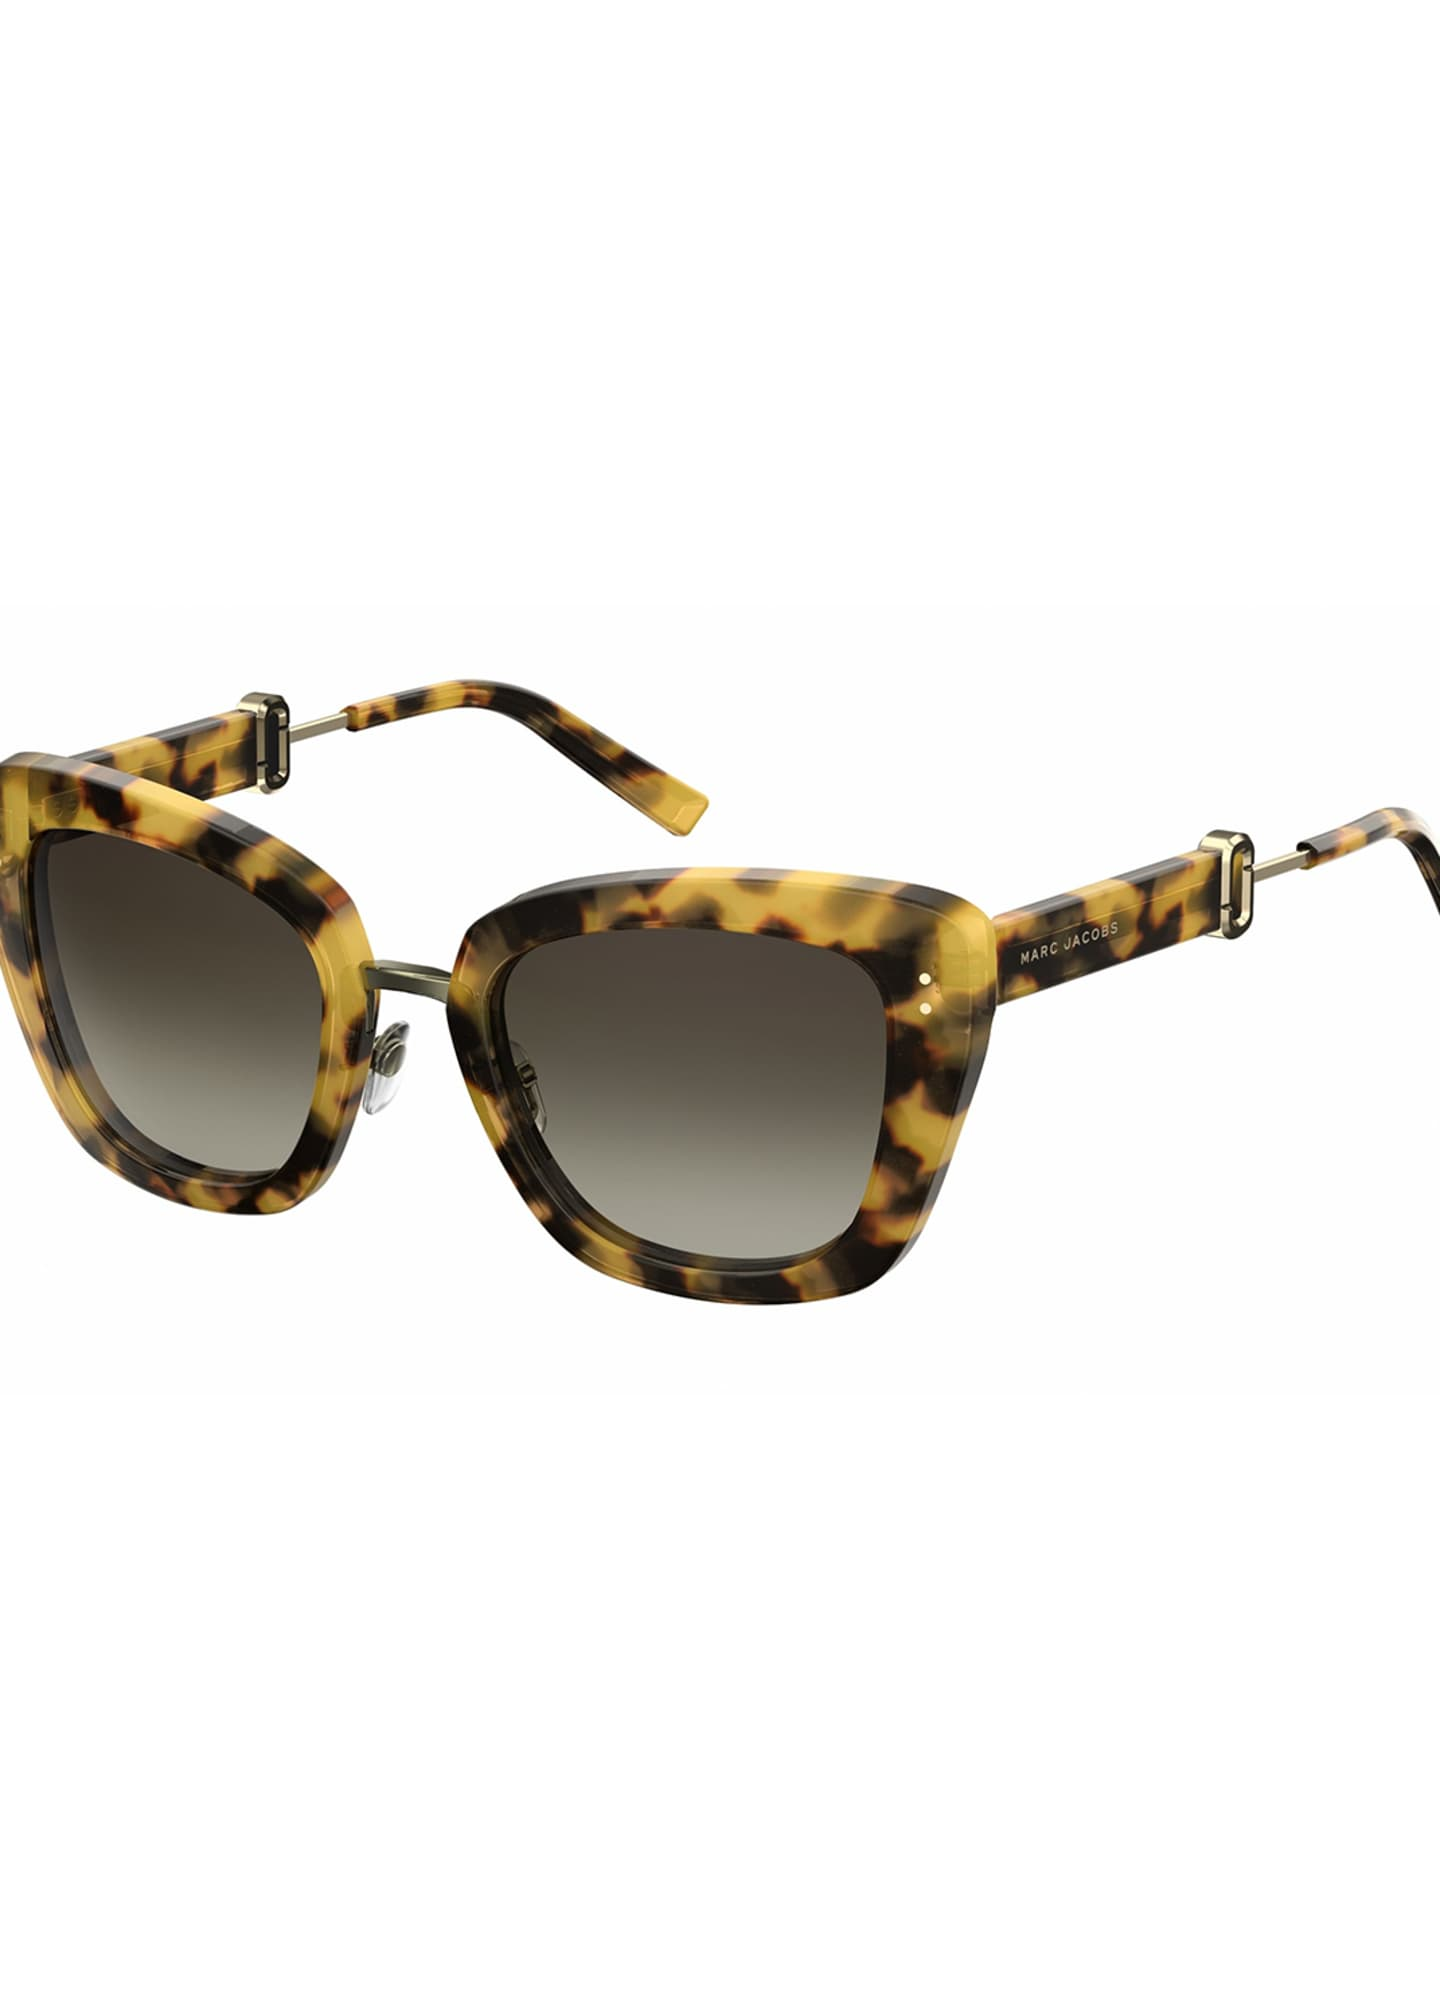 The Marc Jacobs Gradient Acetate Cat-Eye Sunglasses